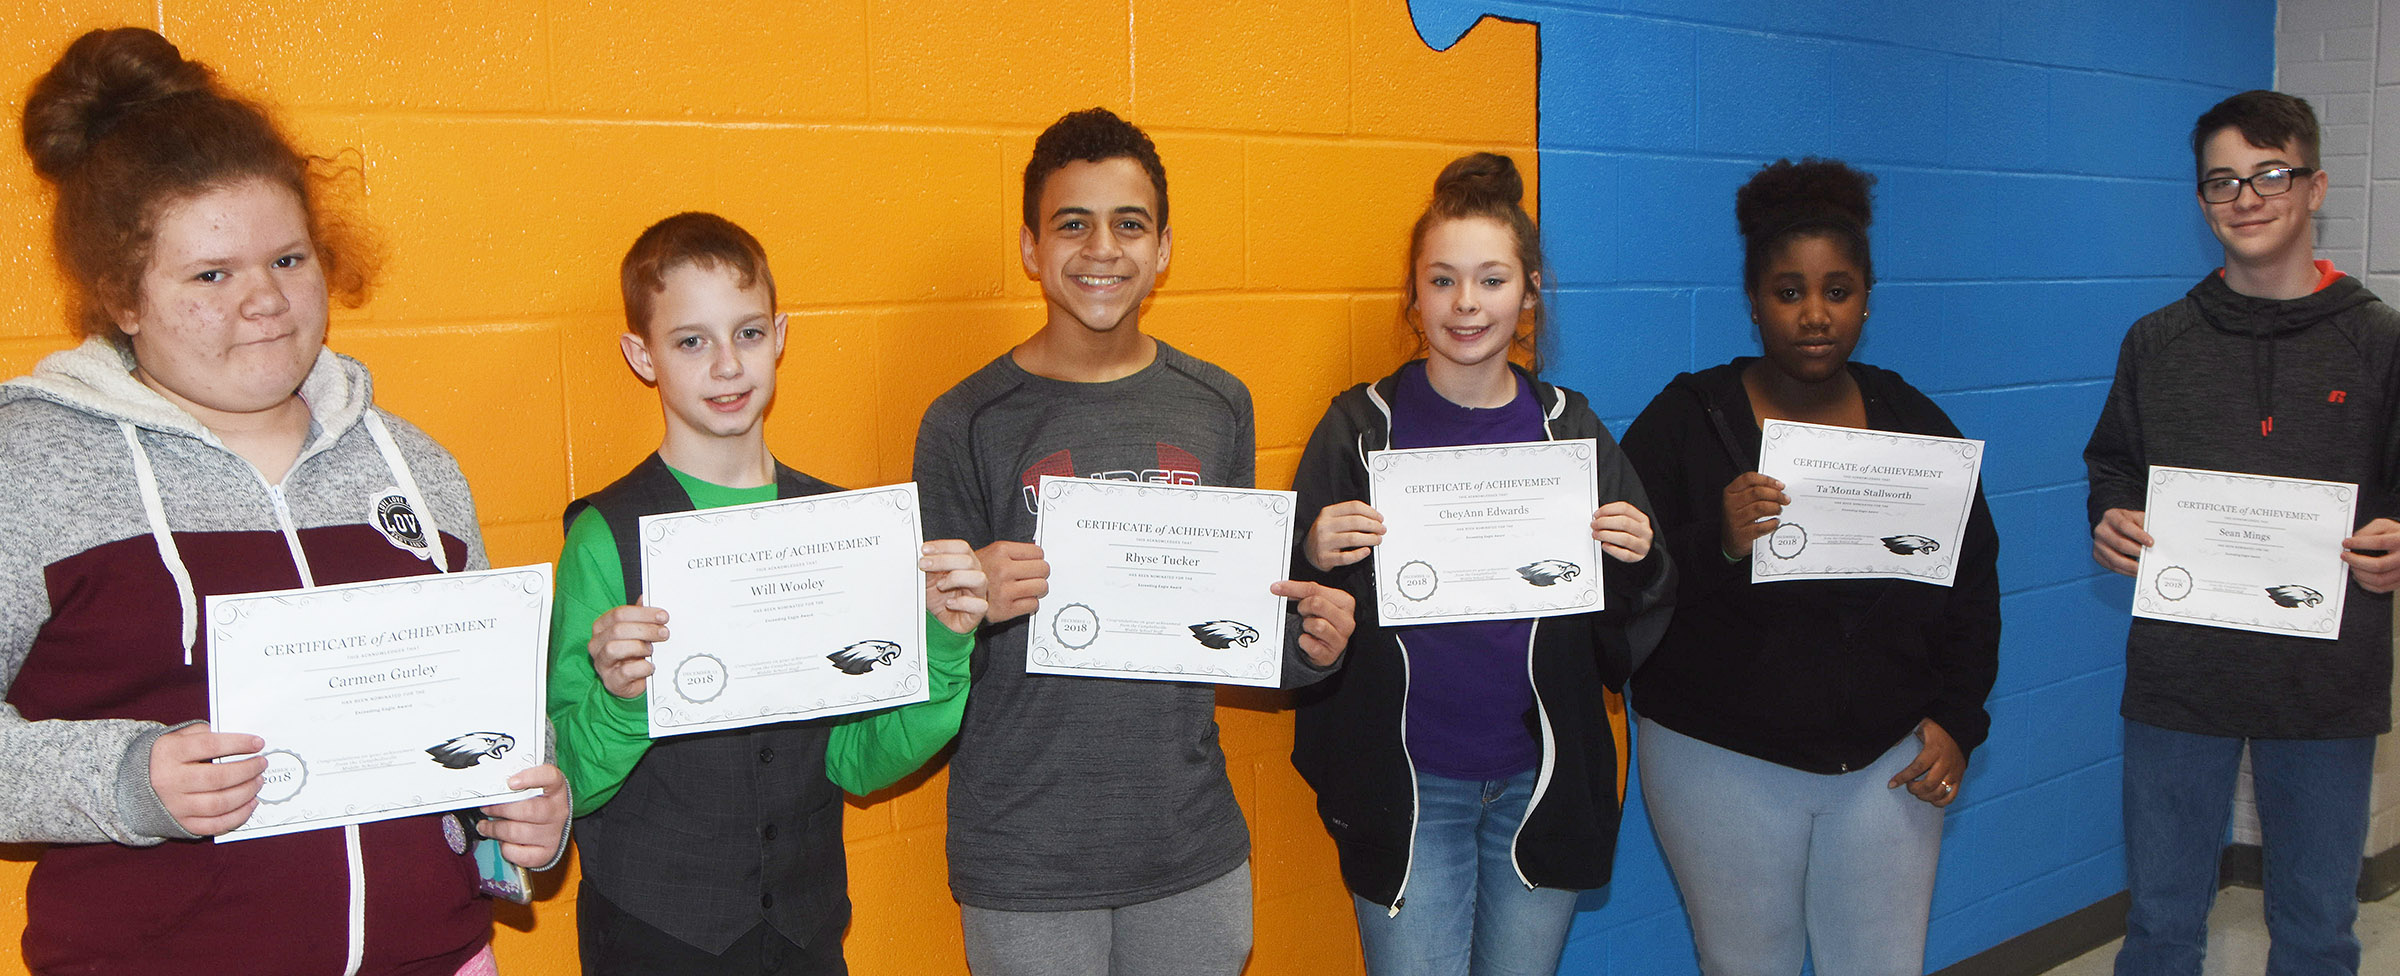 CMS Exceeding Eagles for the week of Dec. 10 are, from left, sixth-graders Carmen Gurley and Will Wooley, seventh-graders Rhyse Tucker and CheyAnn Edwards and eighth-graders Ta'Monta Stallworth and Sean Mings.